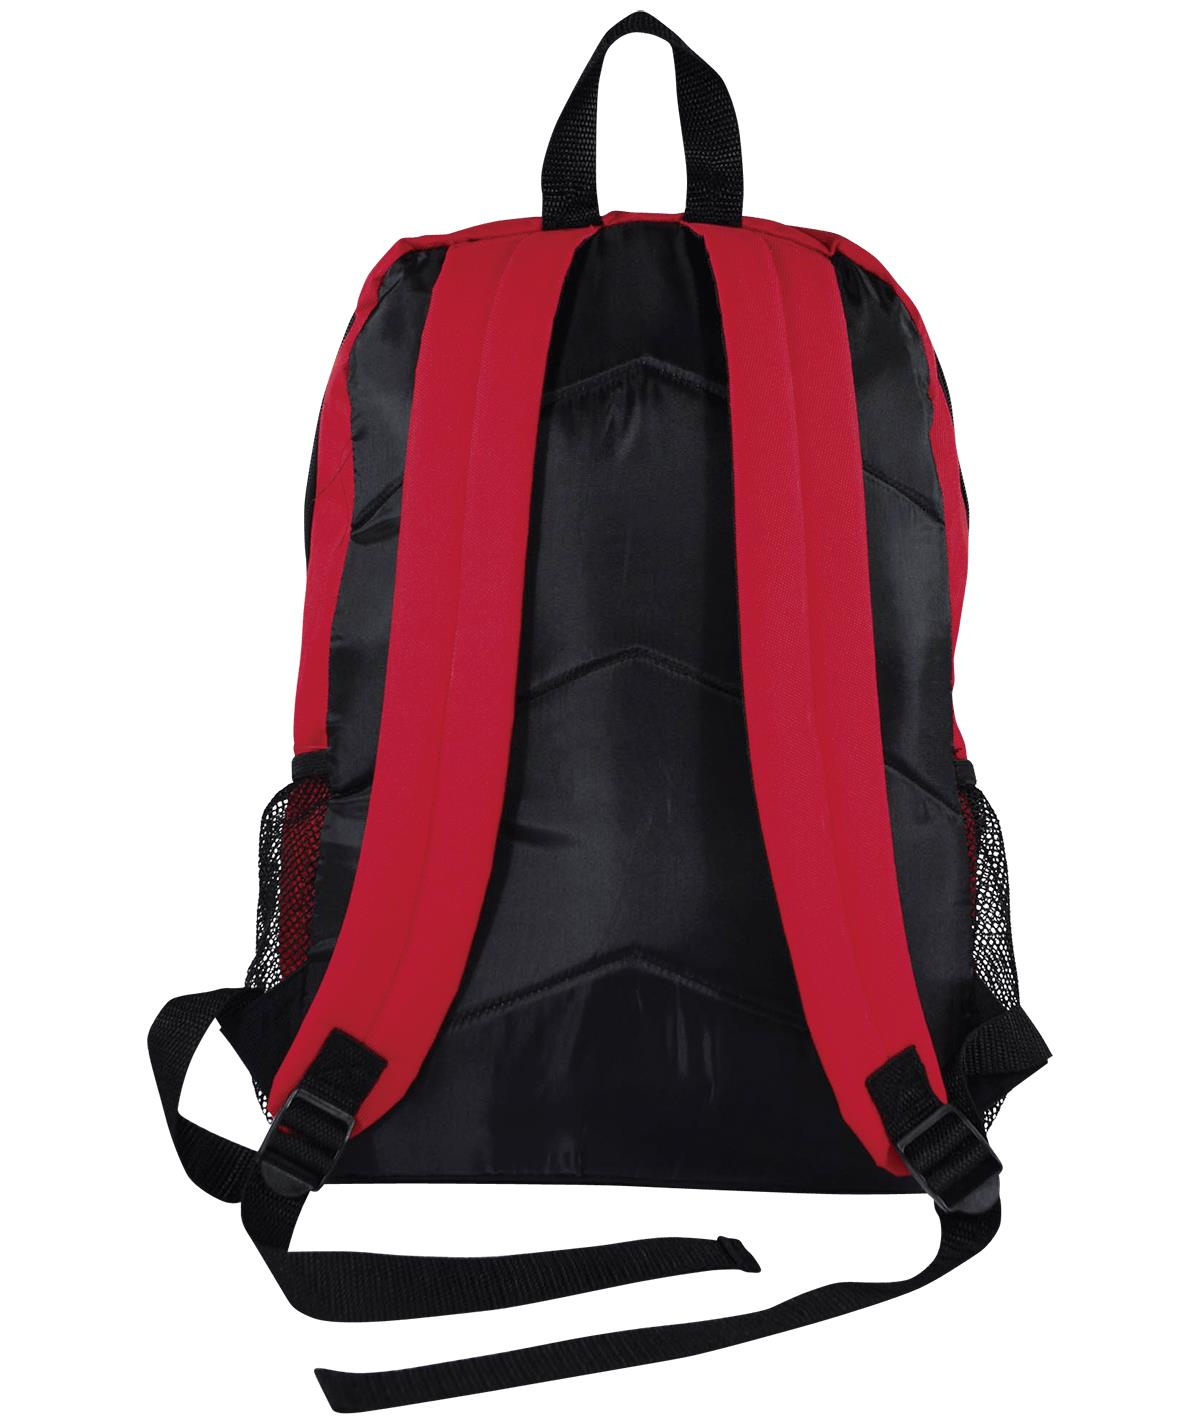 Chasse Shine Backpack